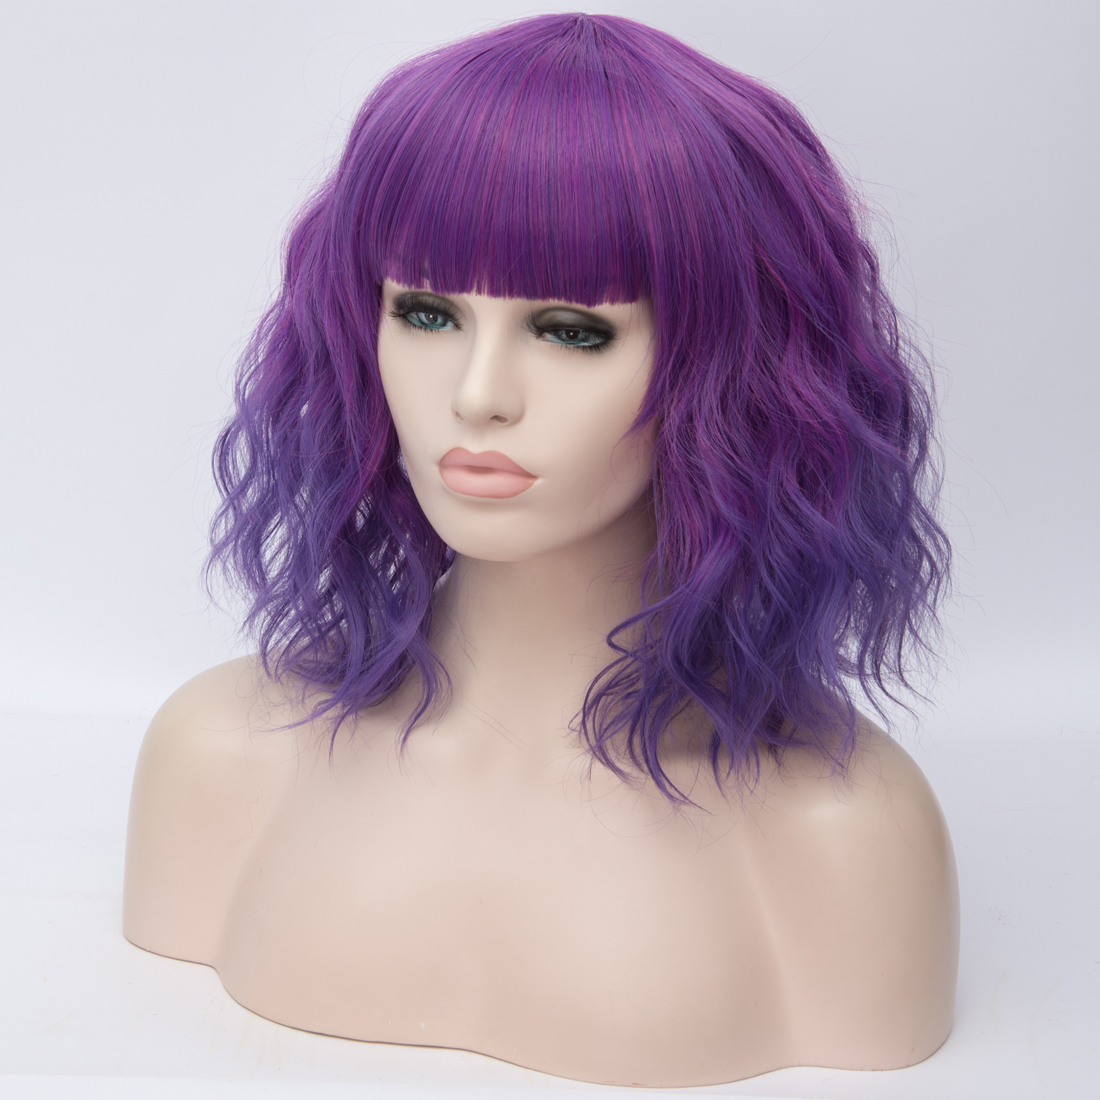 Ha2a172a87c88436a9fe297ede79adbddM - Similler Short Synthetic Wig for Women Cosplay Curly Hair Heat Resistance Ombre Color Blue Purple Pink Green Orange Two Tones